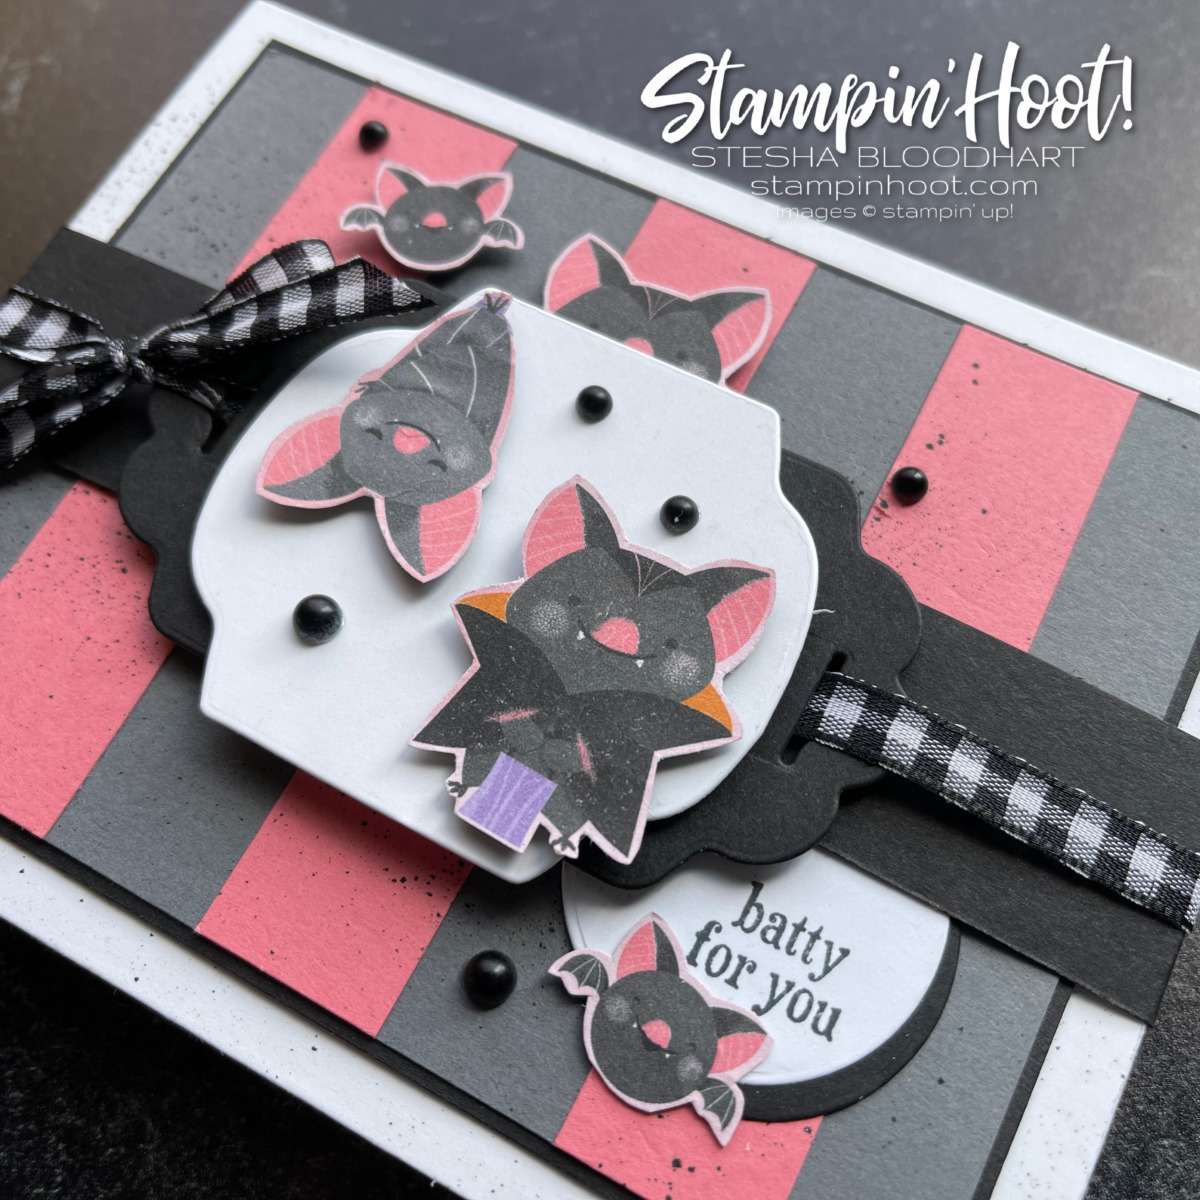 Frightfully Cute Bundle and Cute Halloween DSP by Stampin' Up! Batty for You Card by Stesha Bloodhart, Stampin' Hoot!